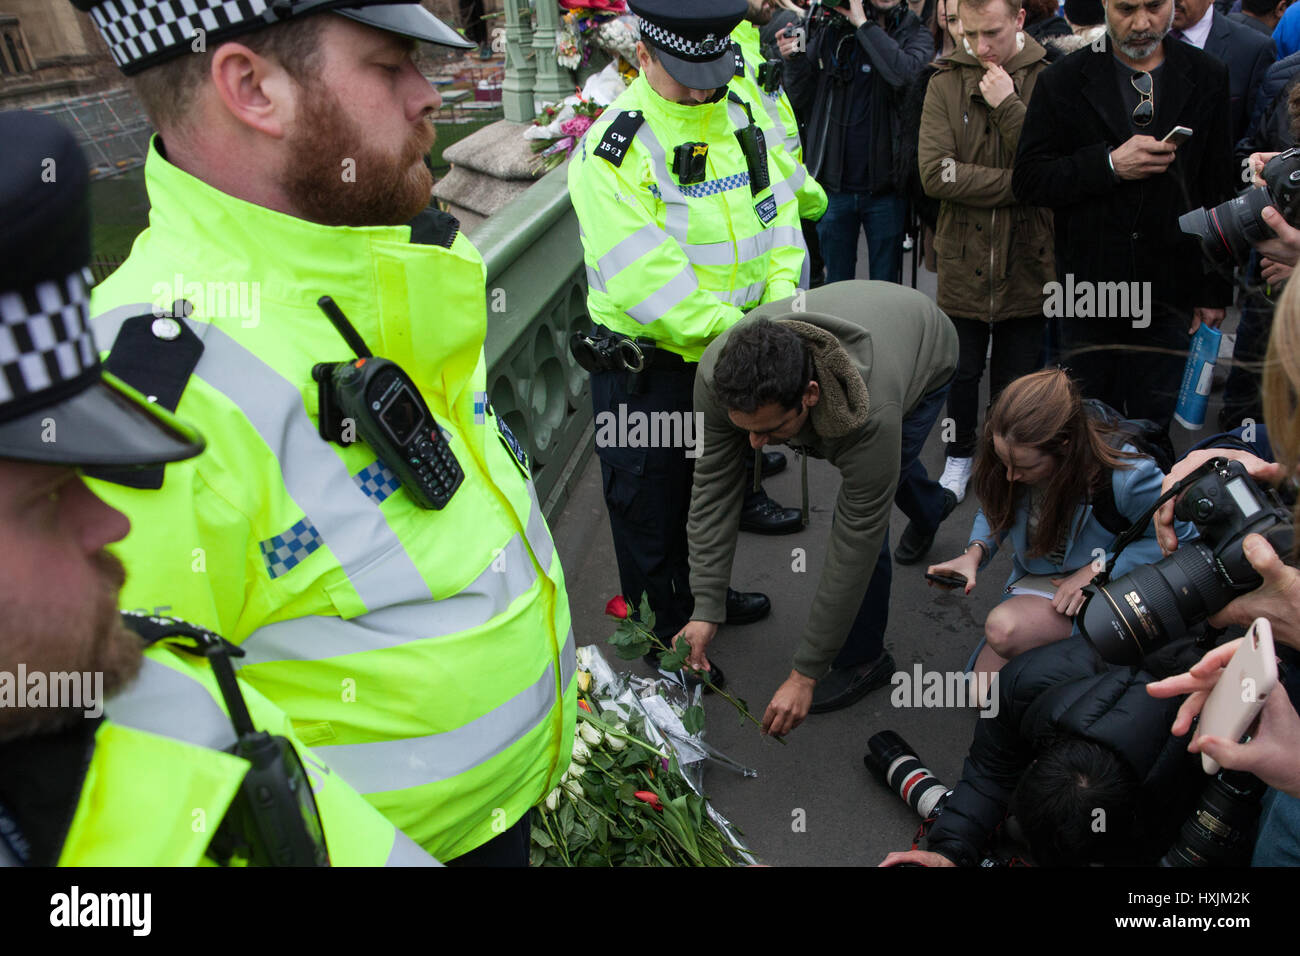 London, UK. 29th March, 2017. Metropolitan Police officers, faith leaders and members of the Muslim community pay - Stock Image